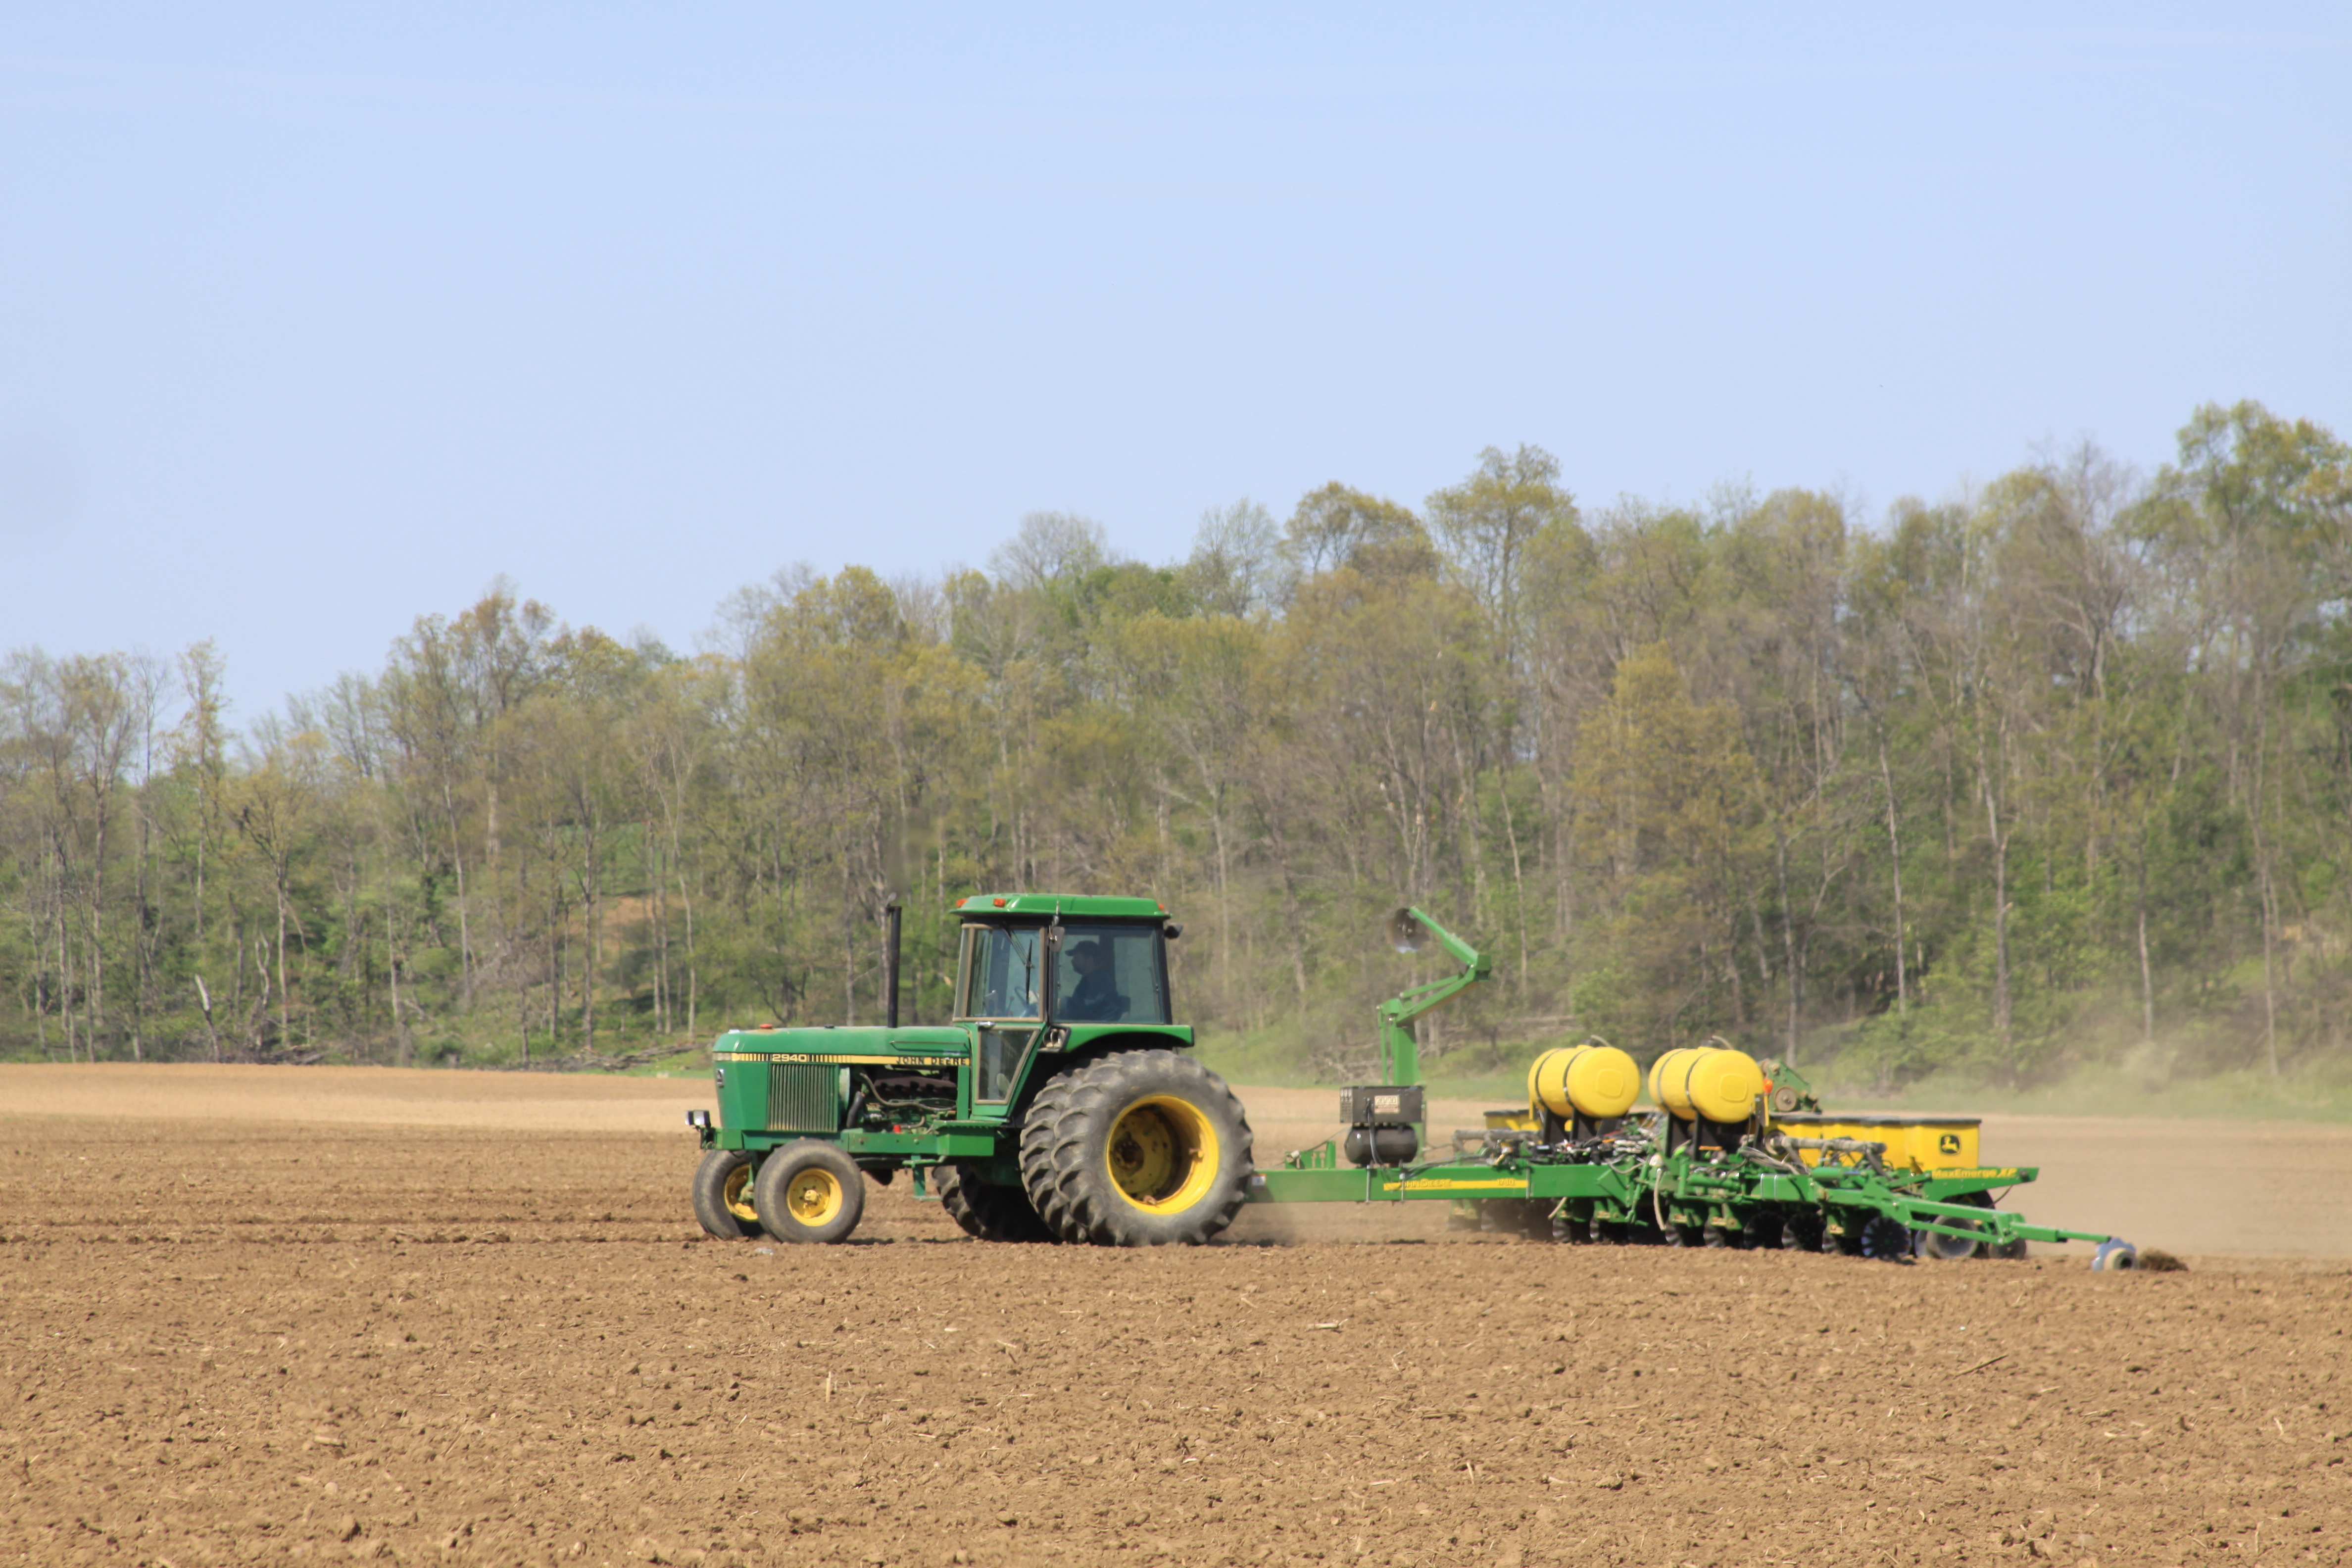 The Canadian government is investing $1.1 million in the Canadian Fertilizer Institute.